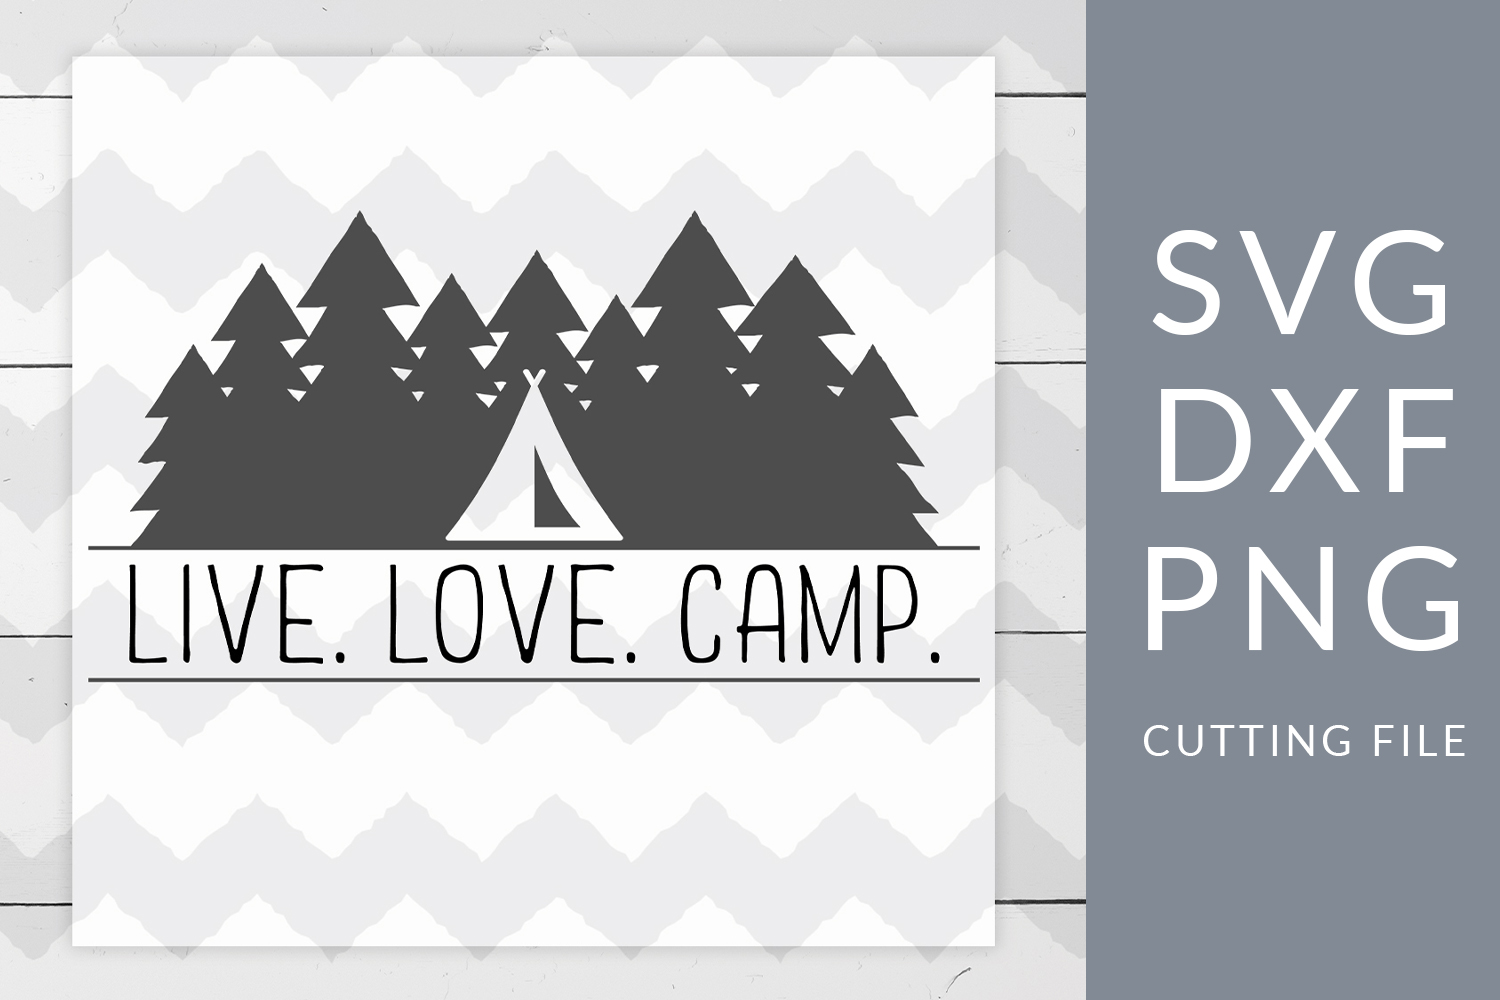 Live Love Camp Camping SVG, DXF, PNG, Cut File example image 1